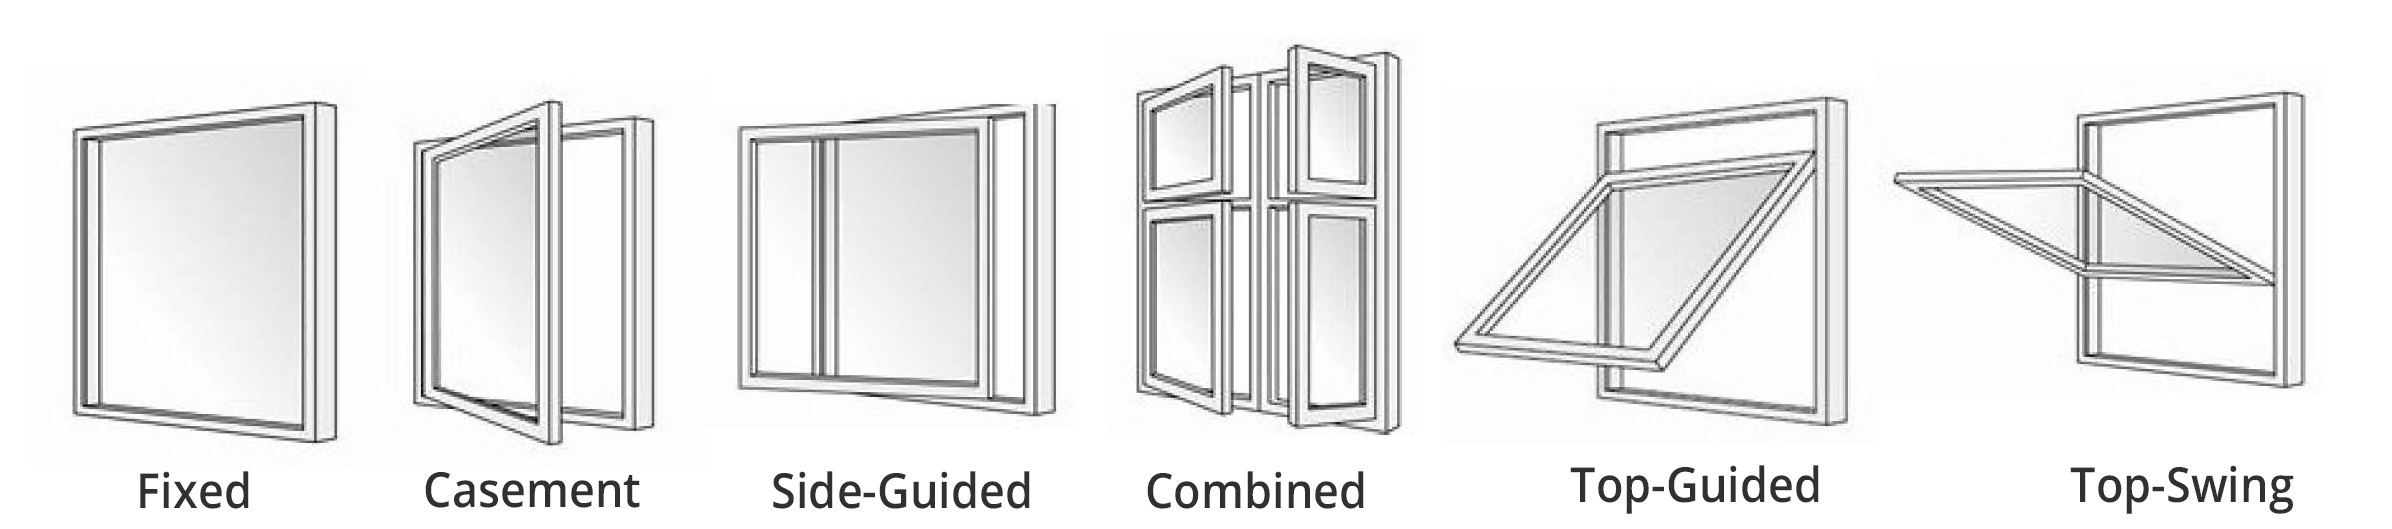 Energy Efficient Window Operation